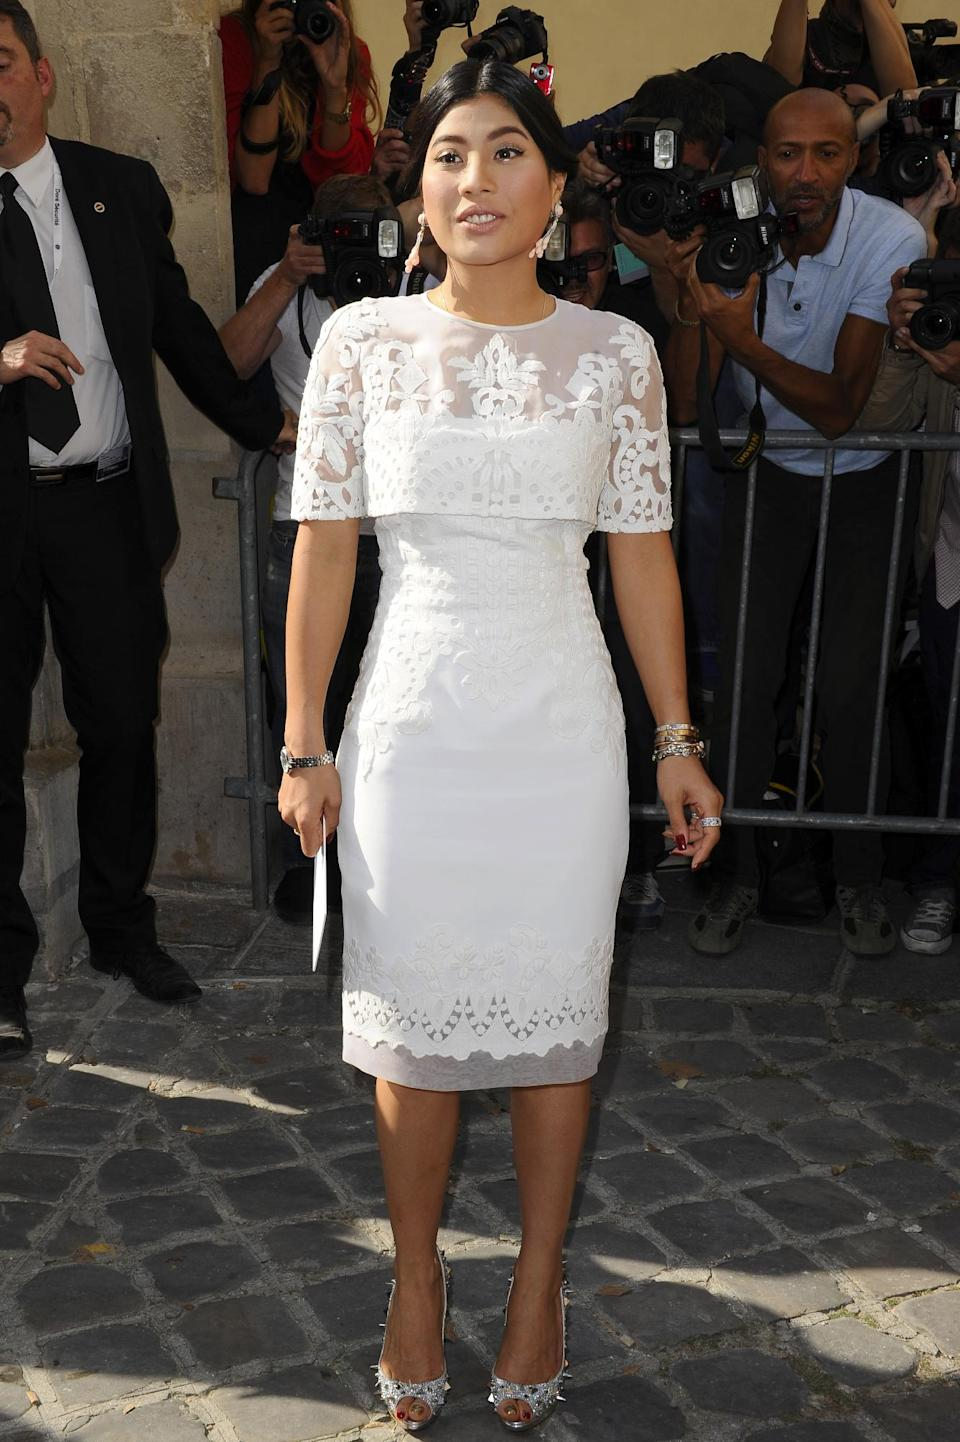 Princess Siriwanwaree Nareerat Of Thailand arrives to attend Christian Dior's ready-to-wear Spring/Summer 2014 fashion collection, presented Friday, Sept. 27, 2013 in Paris. (AP Photo/Zacharie Scheurer)